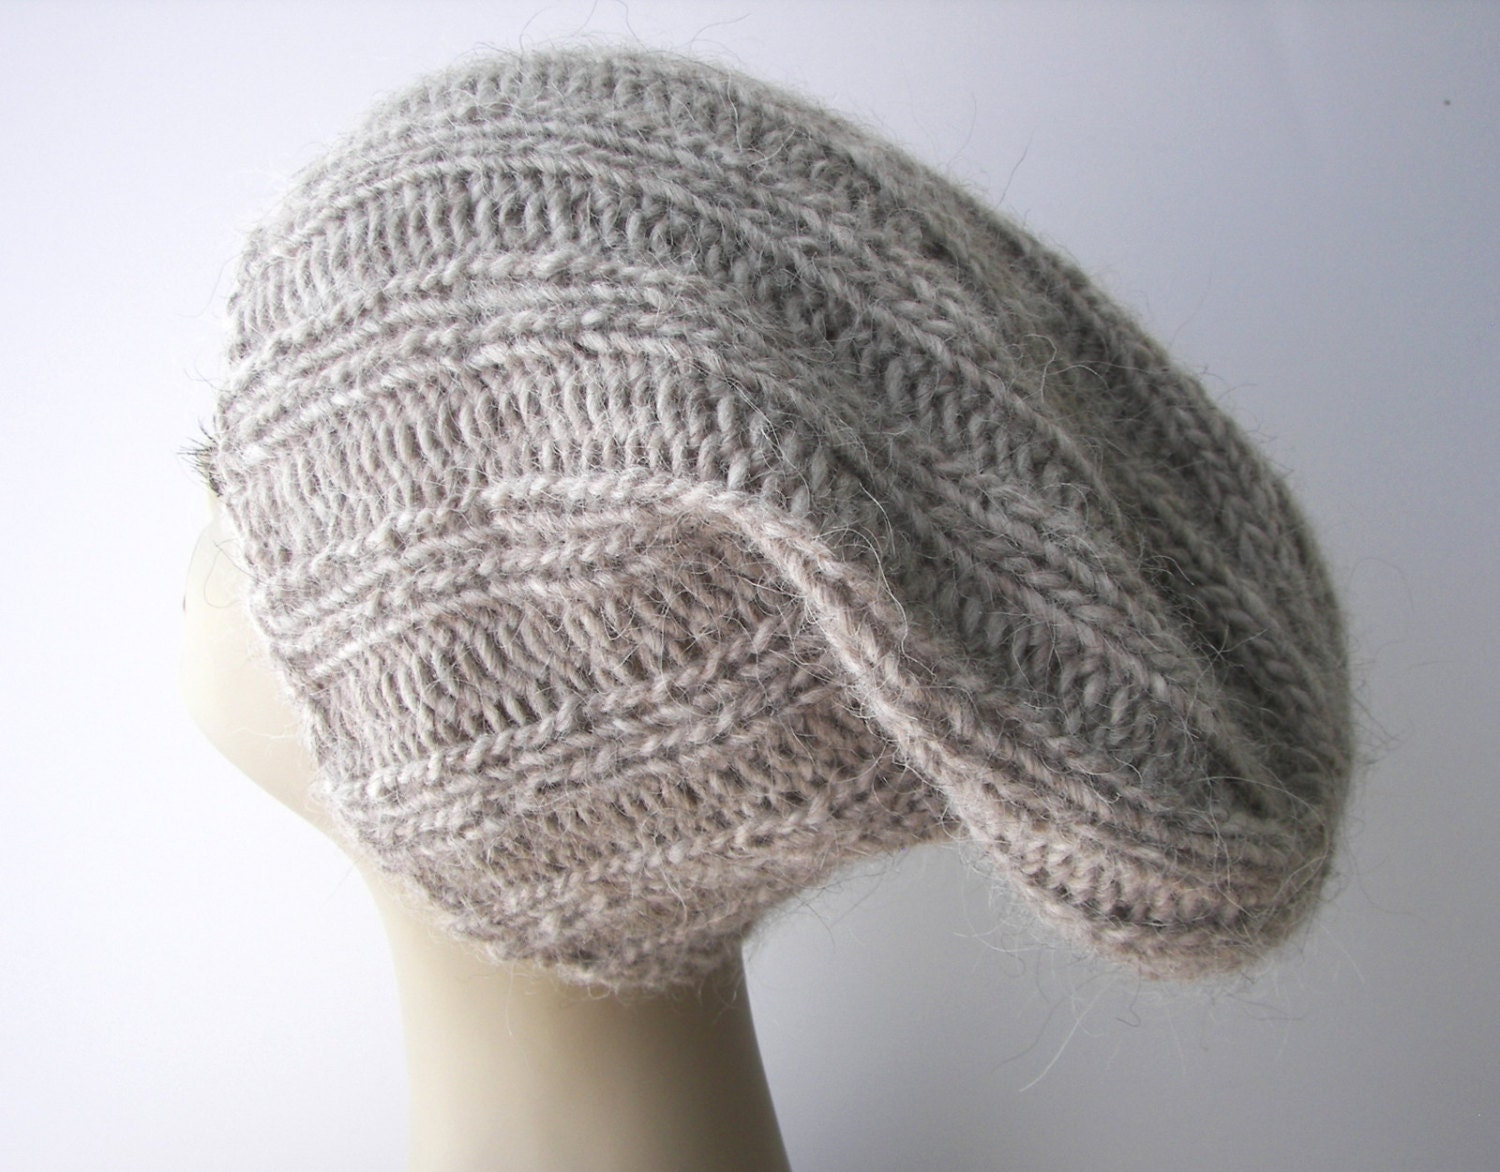 ICELANDIC WOOL Chunky Hand Knit Beanie Ski Hat in GREY Heather